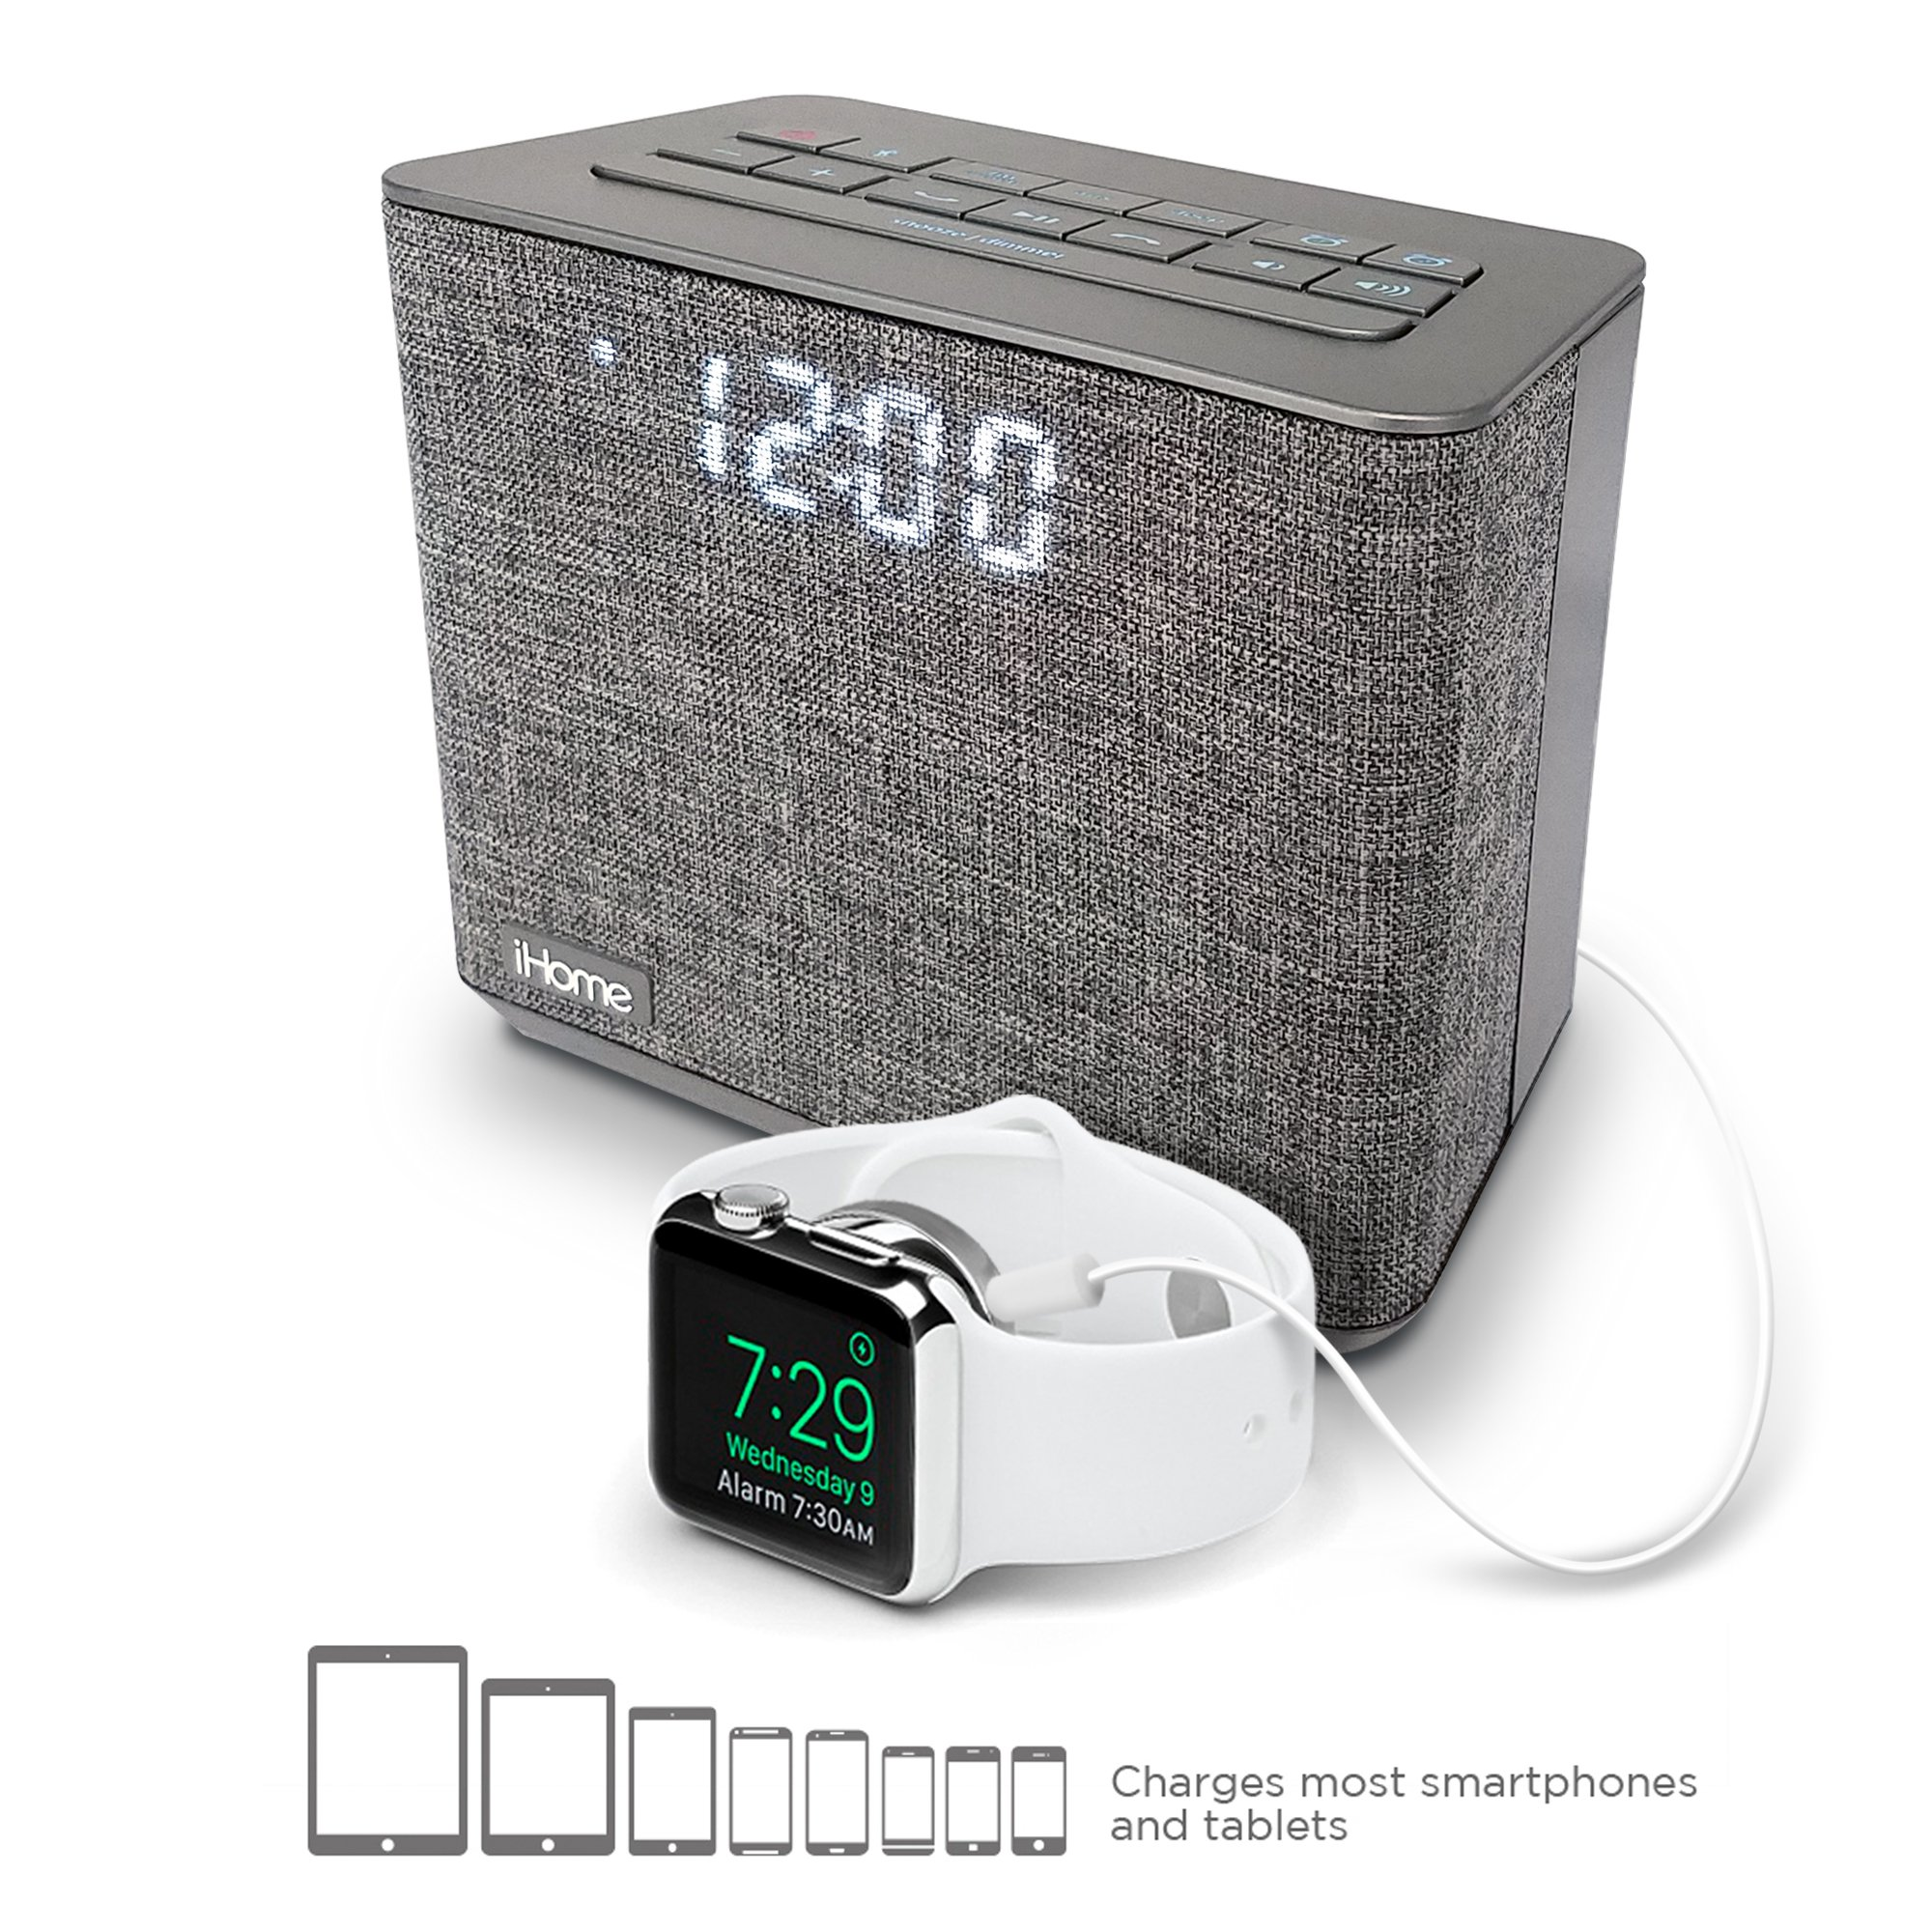 iHome Bluetooth Dual Alarm FM Clock Radio with Speakerphone and USB Charging Grey (iBT232) by iHome